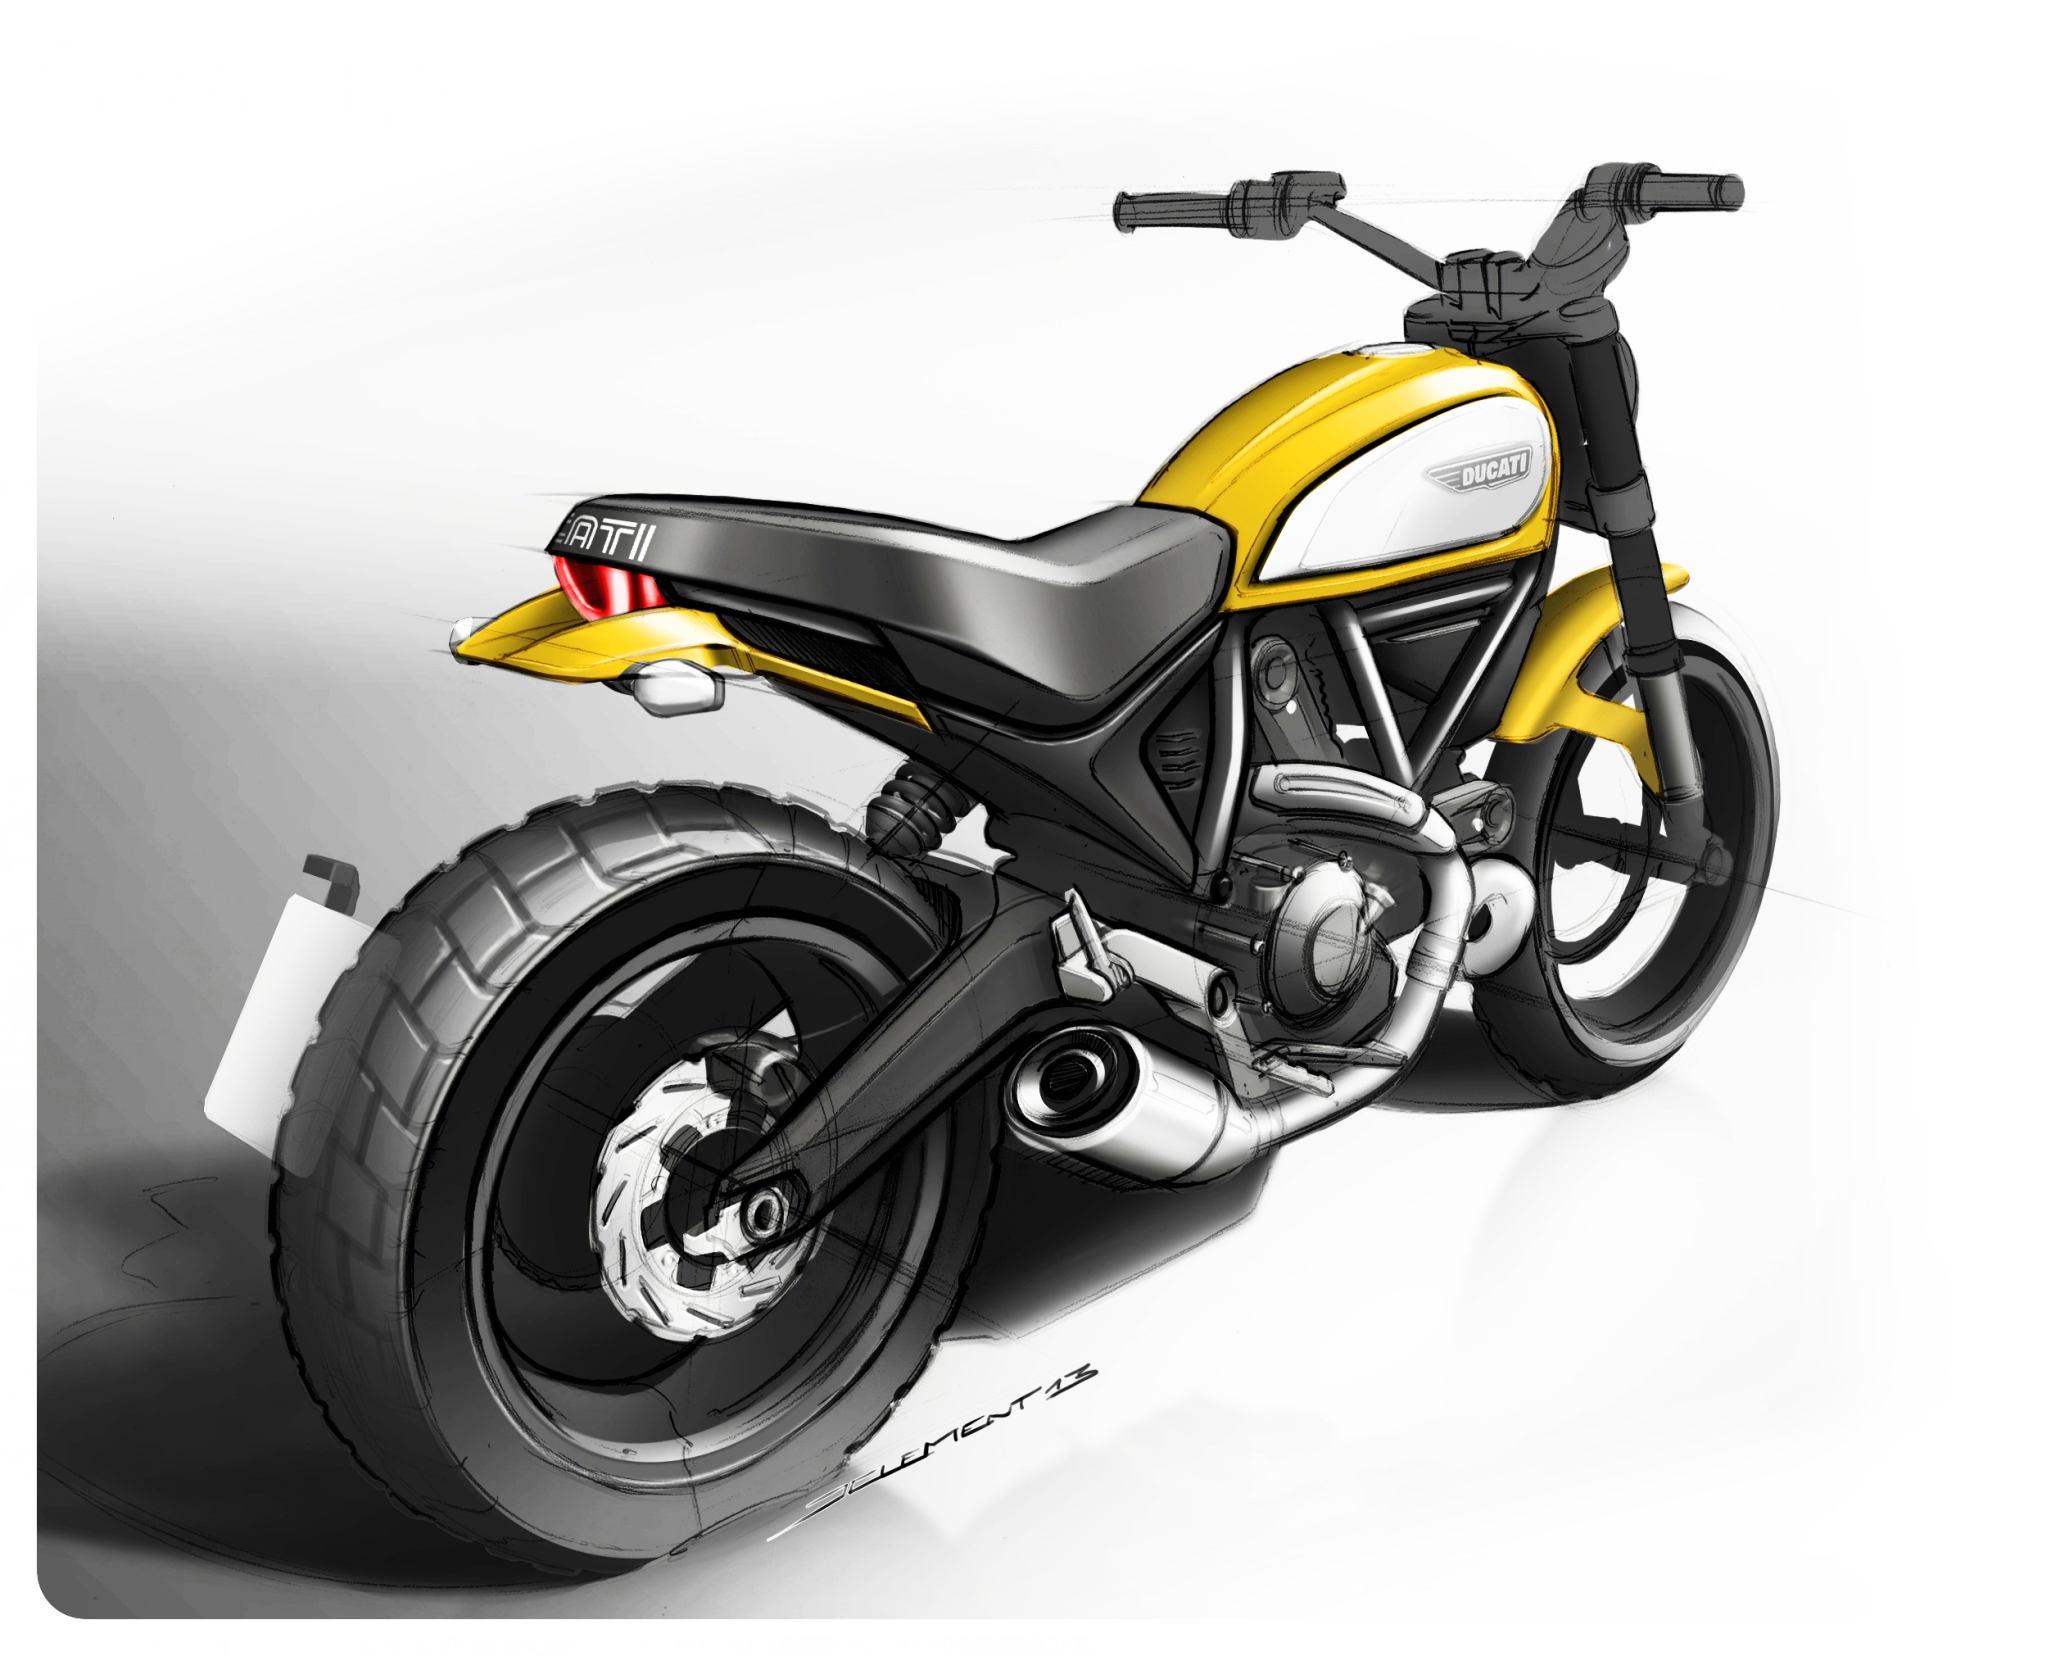 75 Pics Of The 2015 Ducati Scrambler And It Doesn T Look